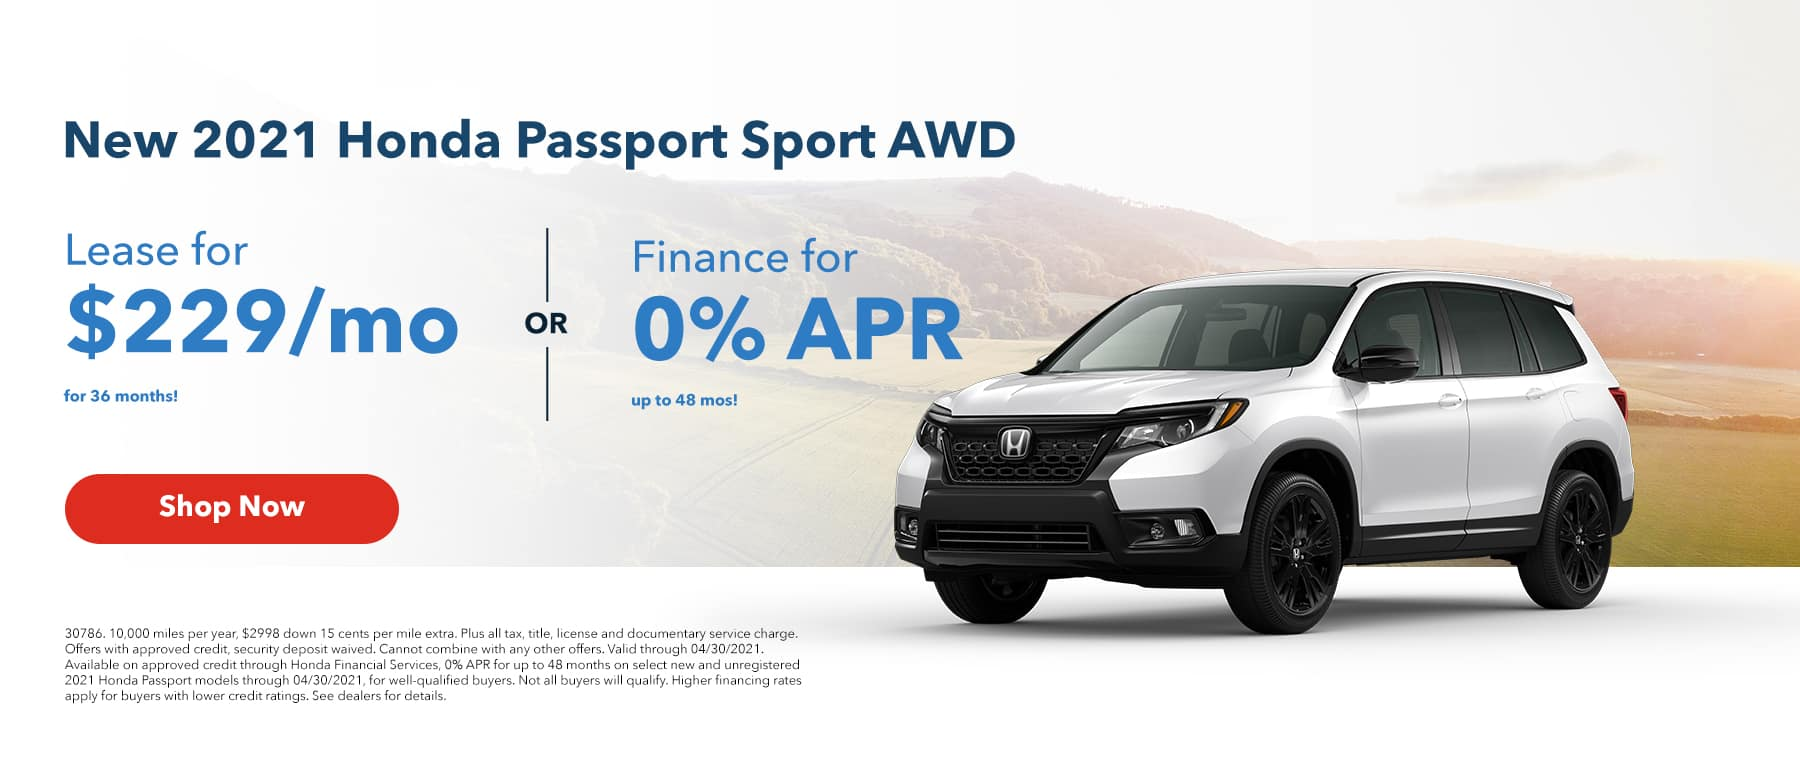 Lease a New 2021 Honda Passport SPORT awd for $229/mo 36mos or Finance for 0% APR up to 48mos!